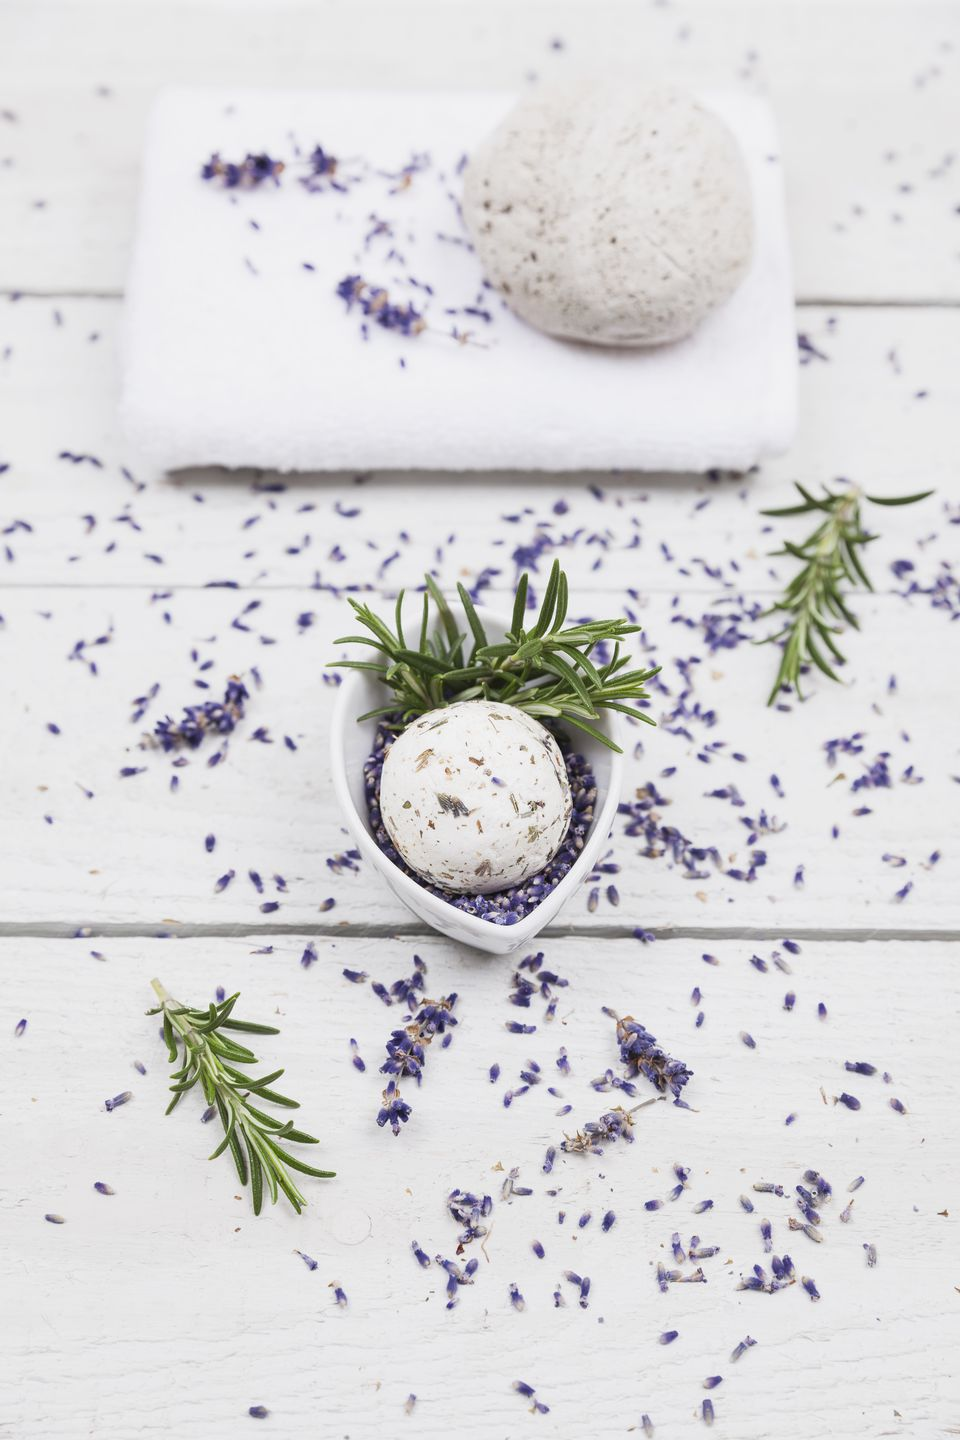 Lavender blossom and rosemary soap ball with natural pumice stone